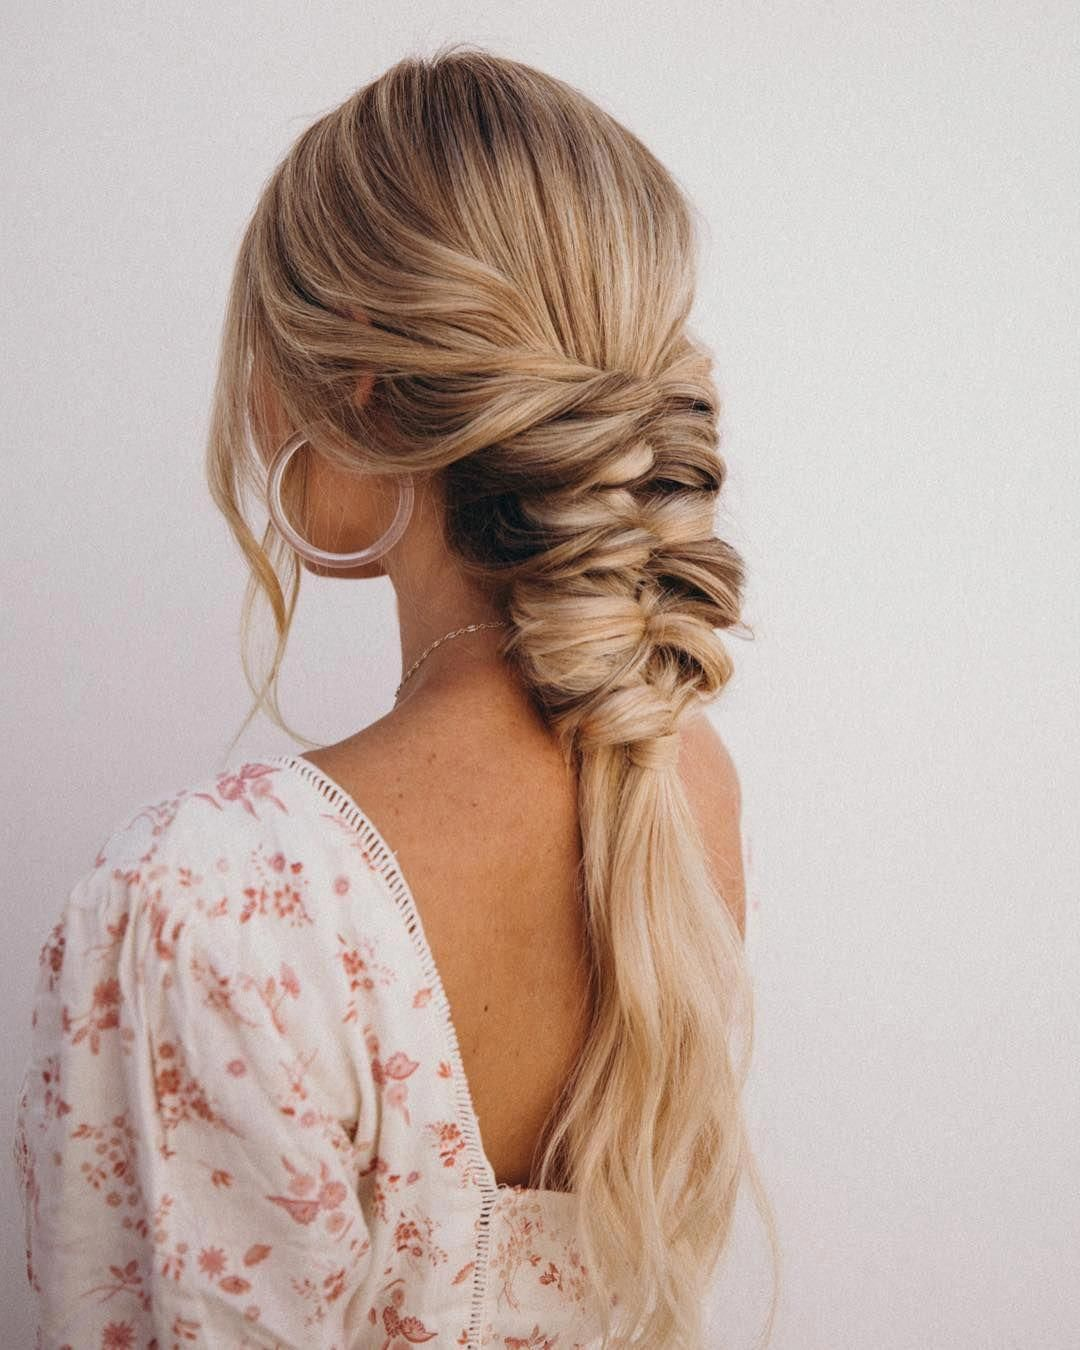 This Tutorial Is All About The Topsy Tail All You Do Is Gather Two Sections Elastic And Then Flip T Cool Braid Hairstyles Braided Hairstyles Long Hair Styles